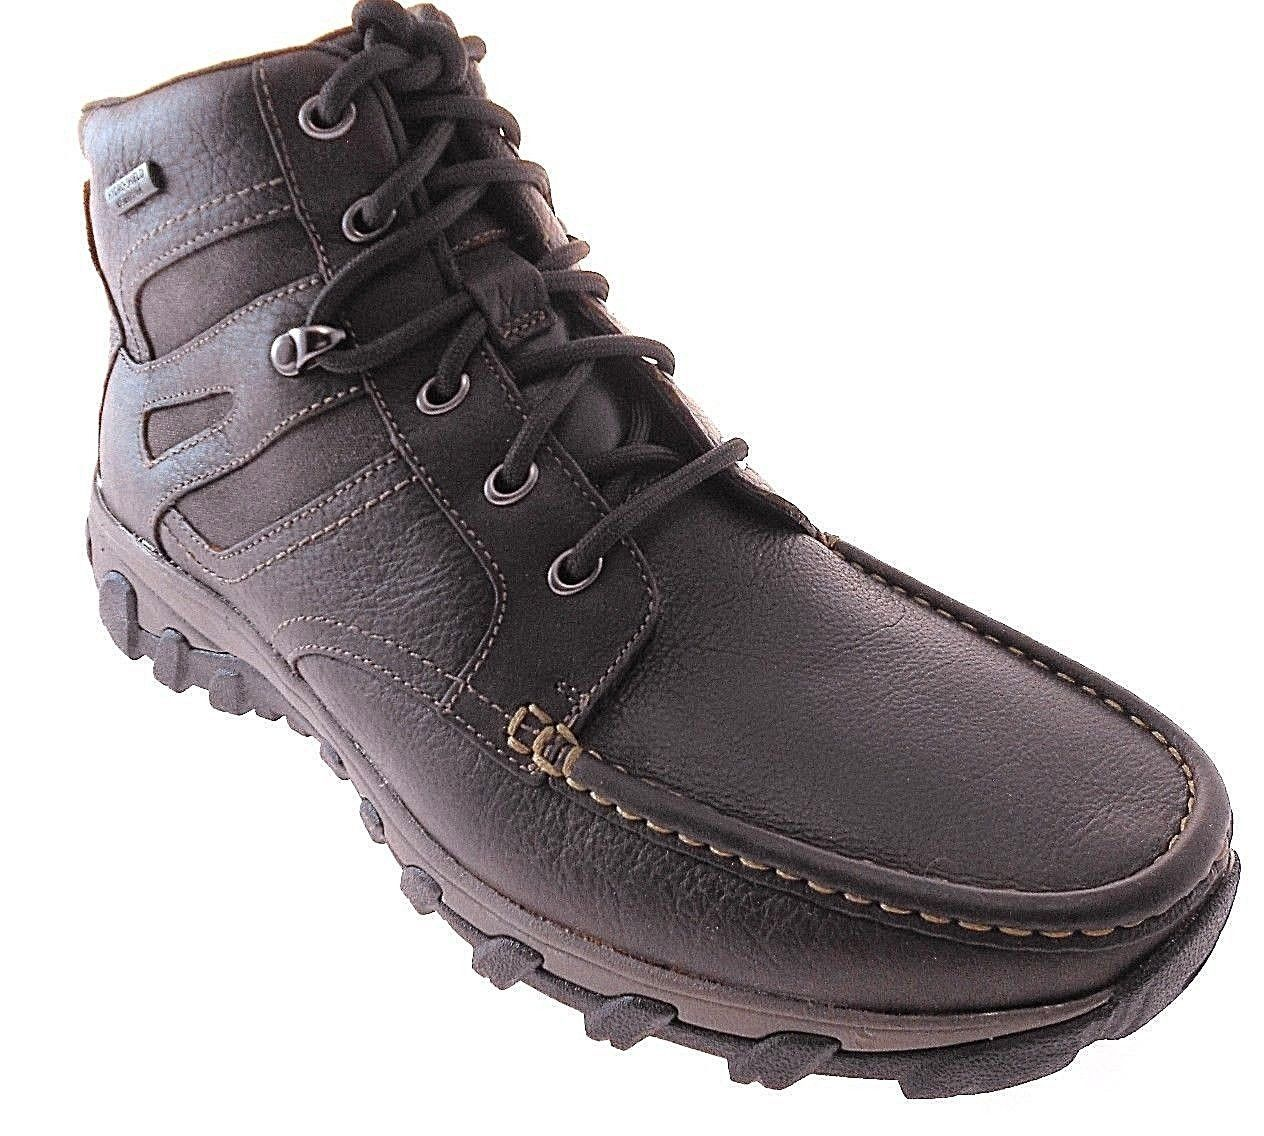 ROCKPORT COLD SPRING PLUS MOC HIGH MEN'S BROWN BOOTS SZ 9.5 W(WIDE), A12209